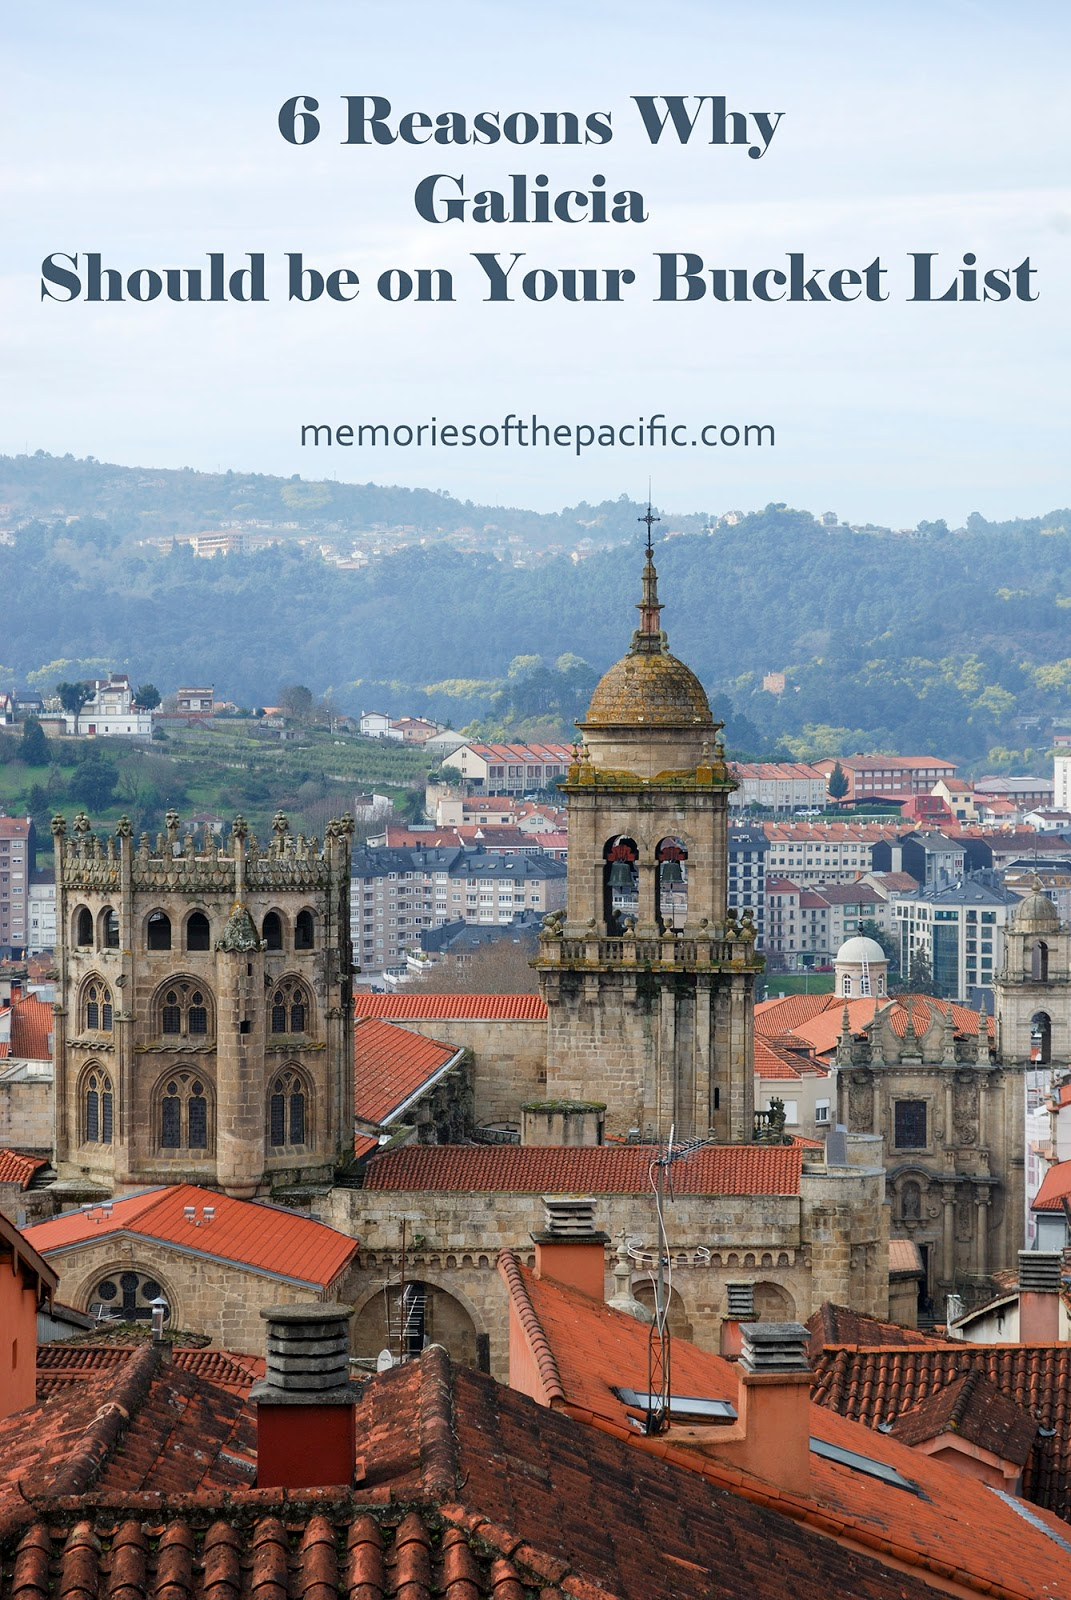 galicia spain visit ourense bucket list travel destination holiday northwest